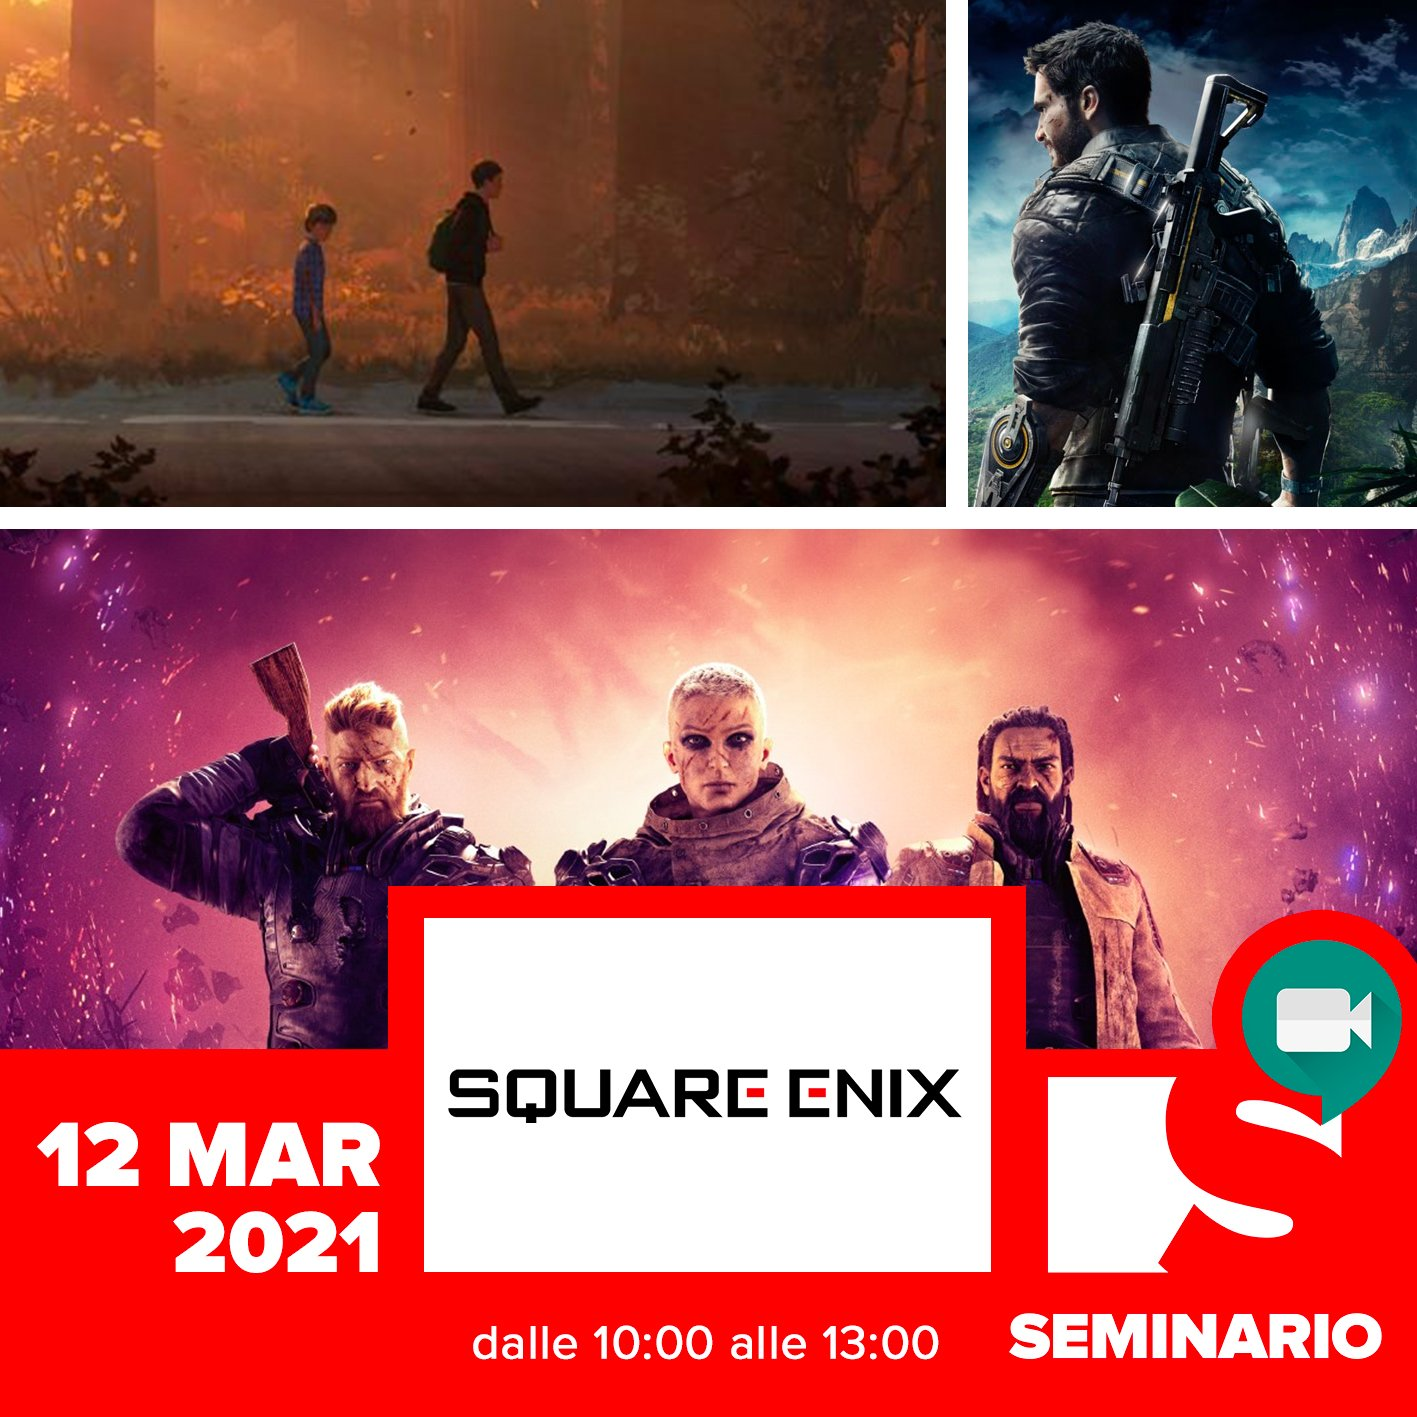 SEMINARIO – RACHELE DOIMO <br> It's not a game it's a journey